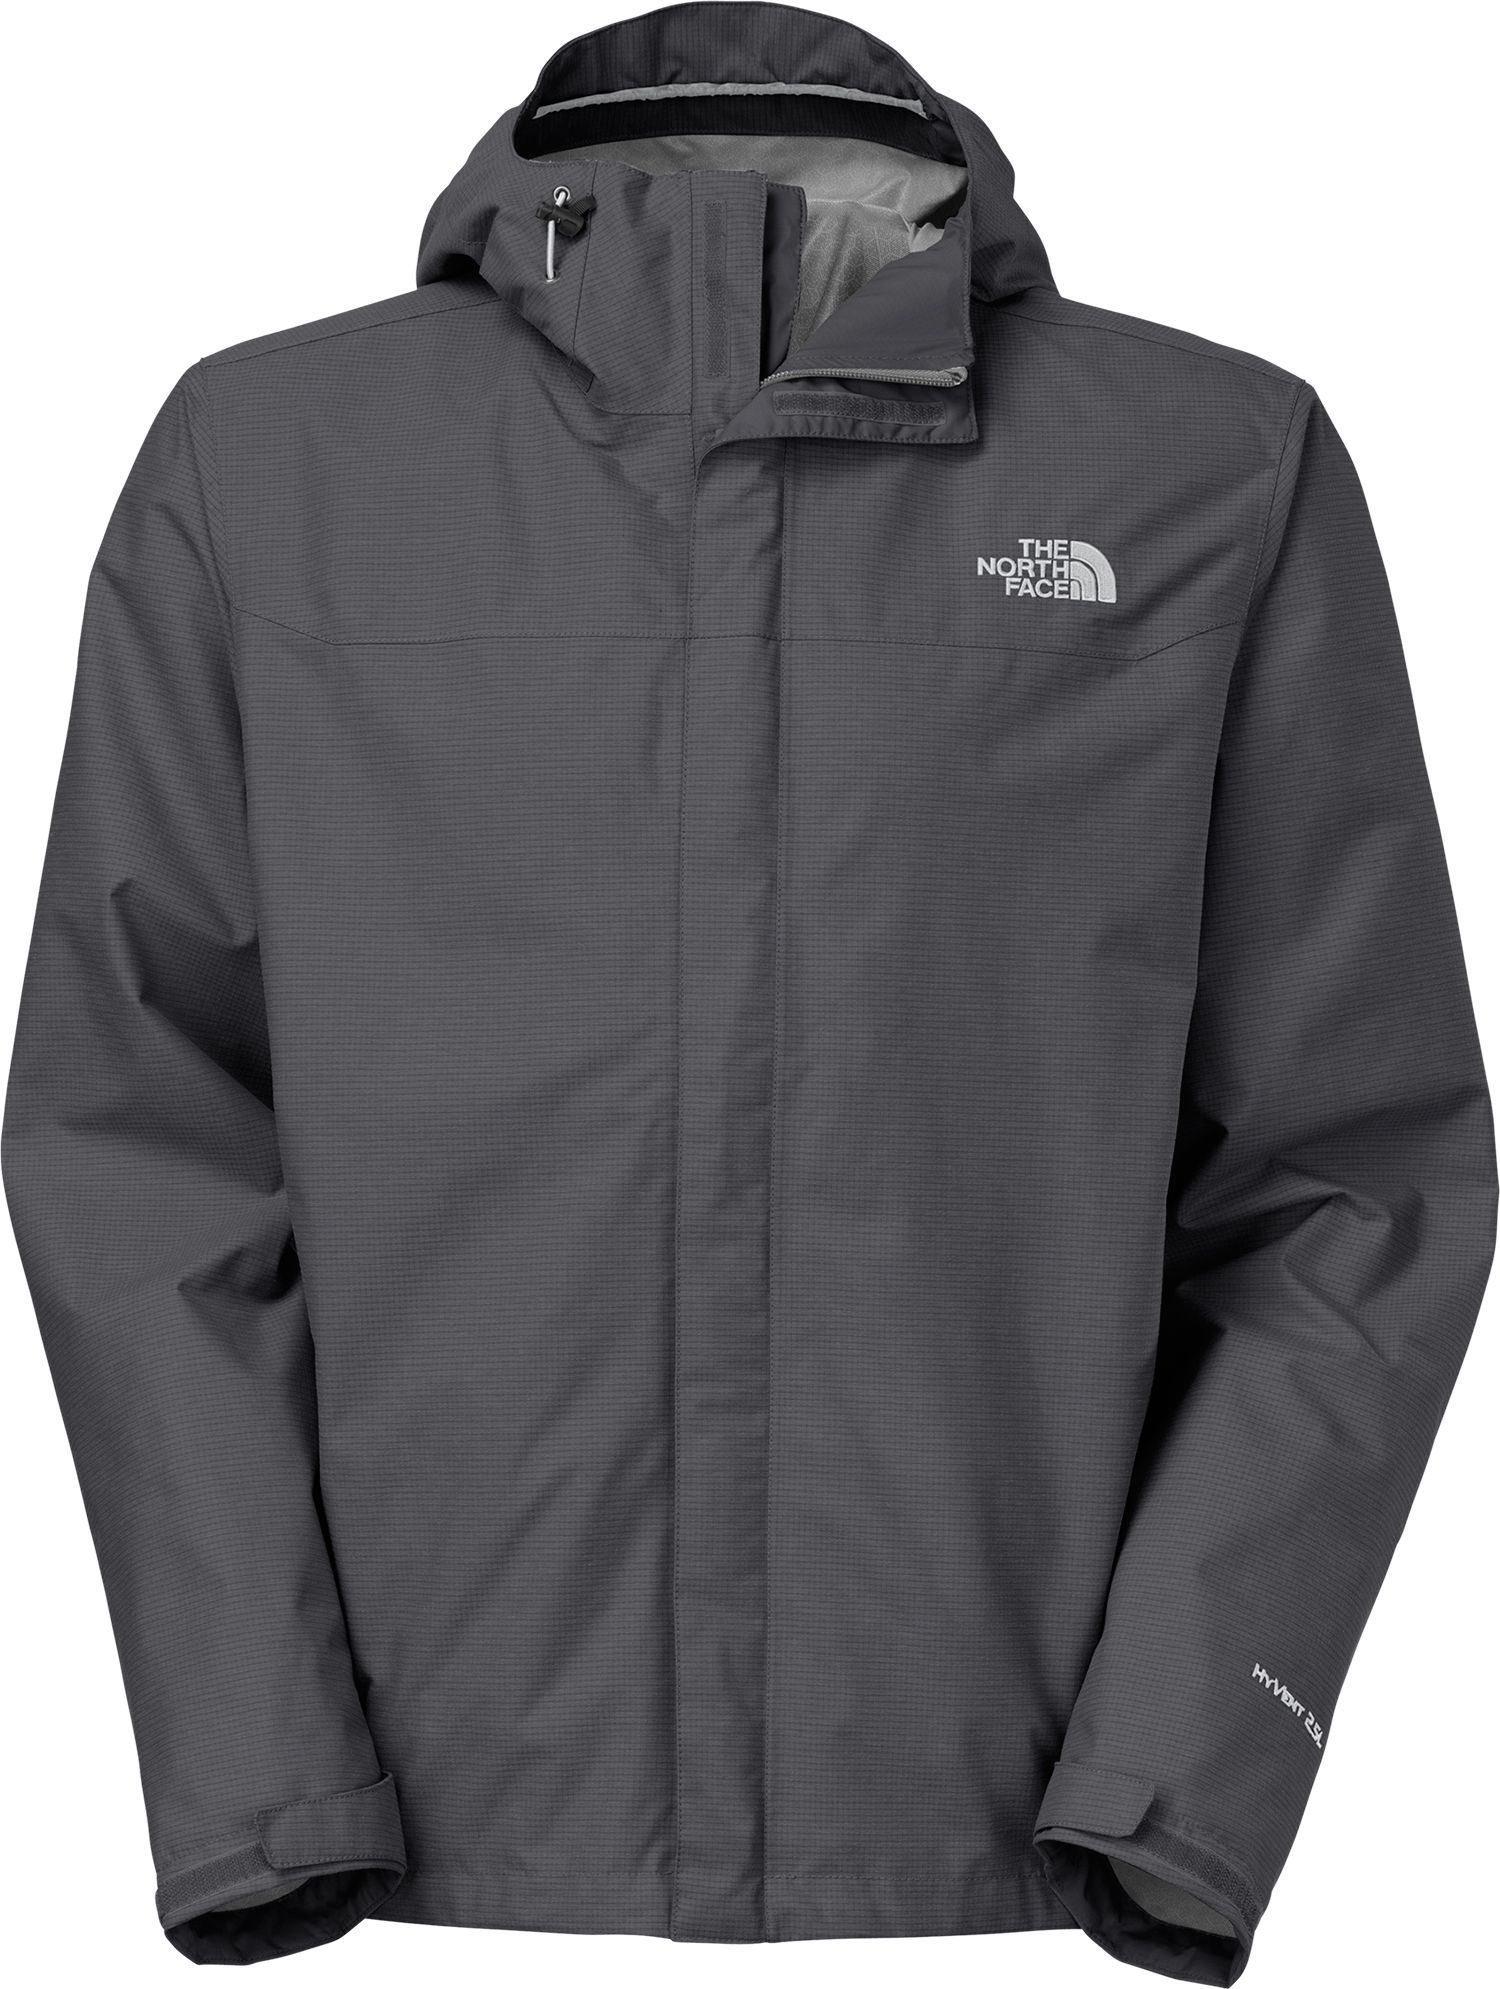 001bd4cd6 The North Face Men's Venture Rain Jacket   Products   Waterproof ...